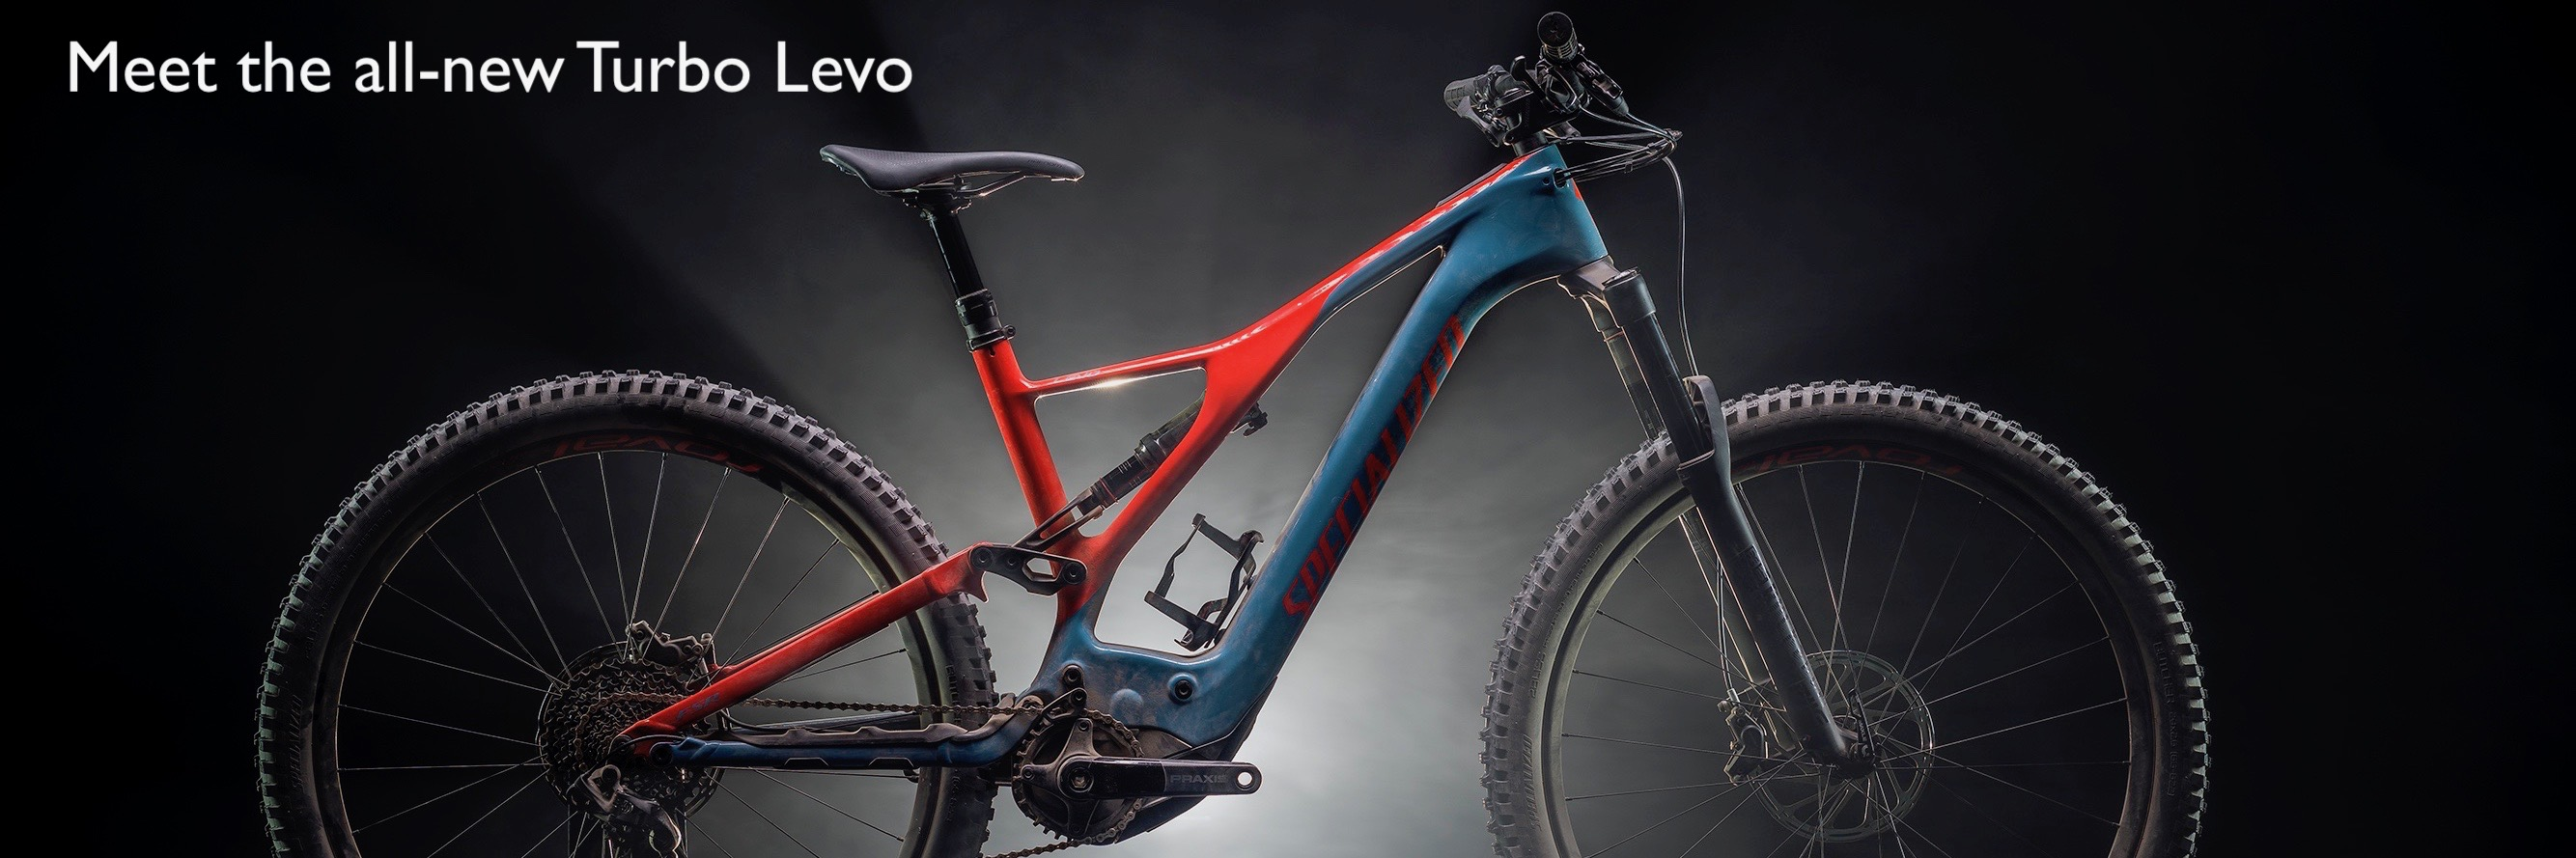 Meet the all-new Turbo Levo